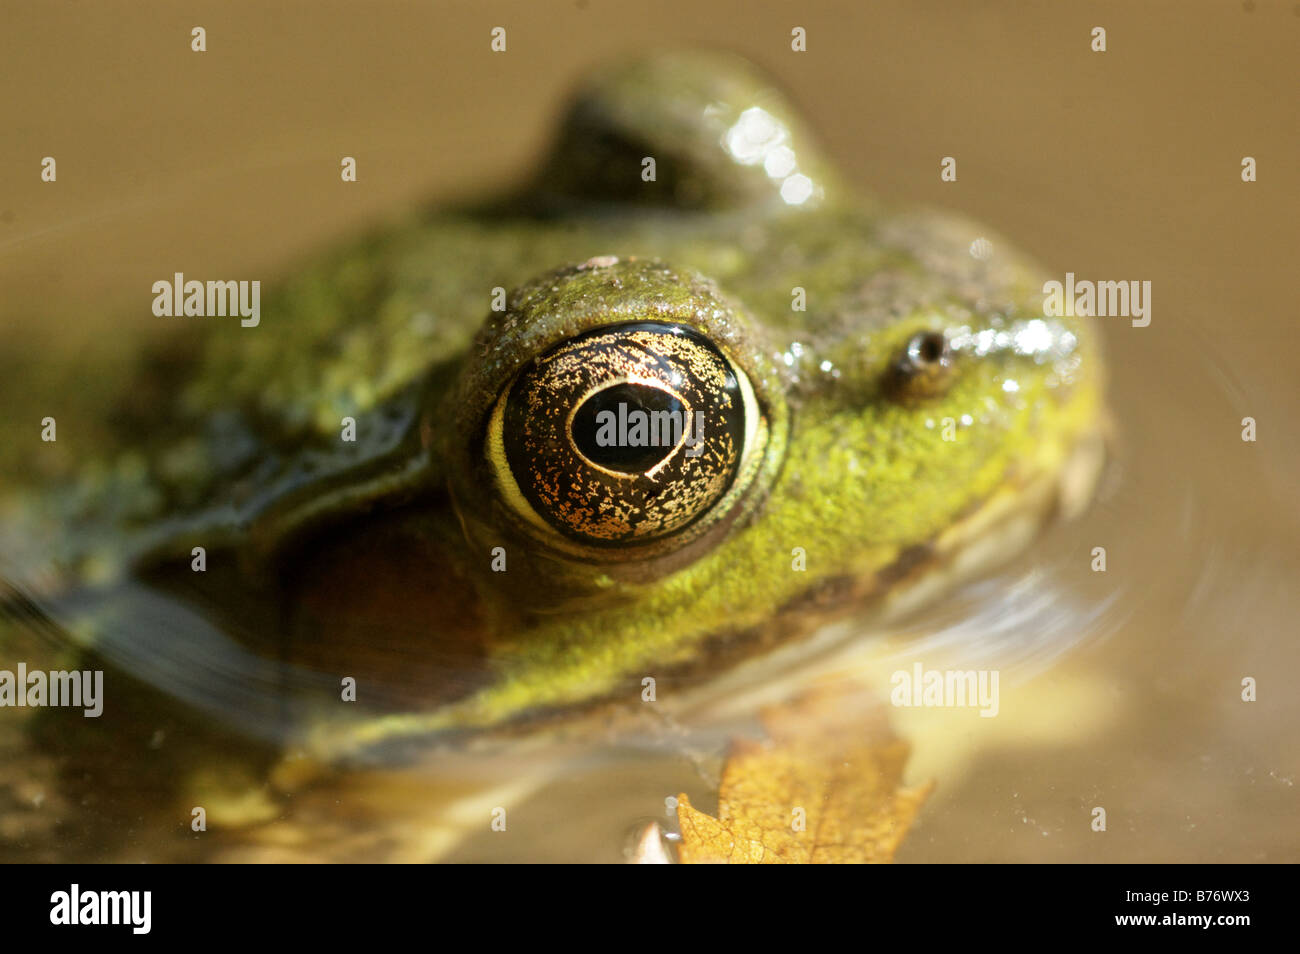 A close up of a frog in water - Stock Image